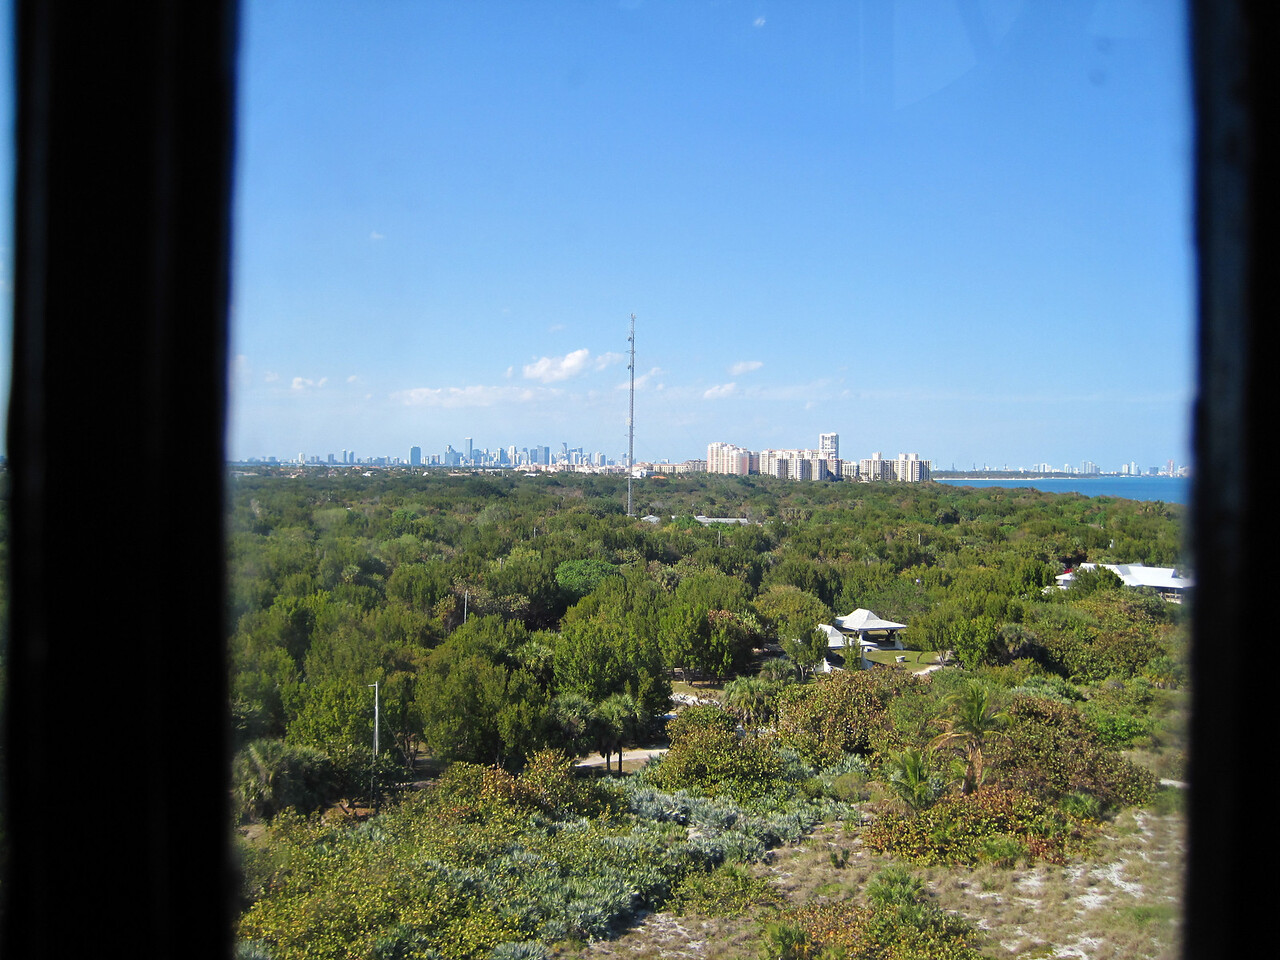 On top of the lighthouse, looking towards Miami, across the island.